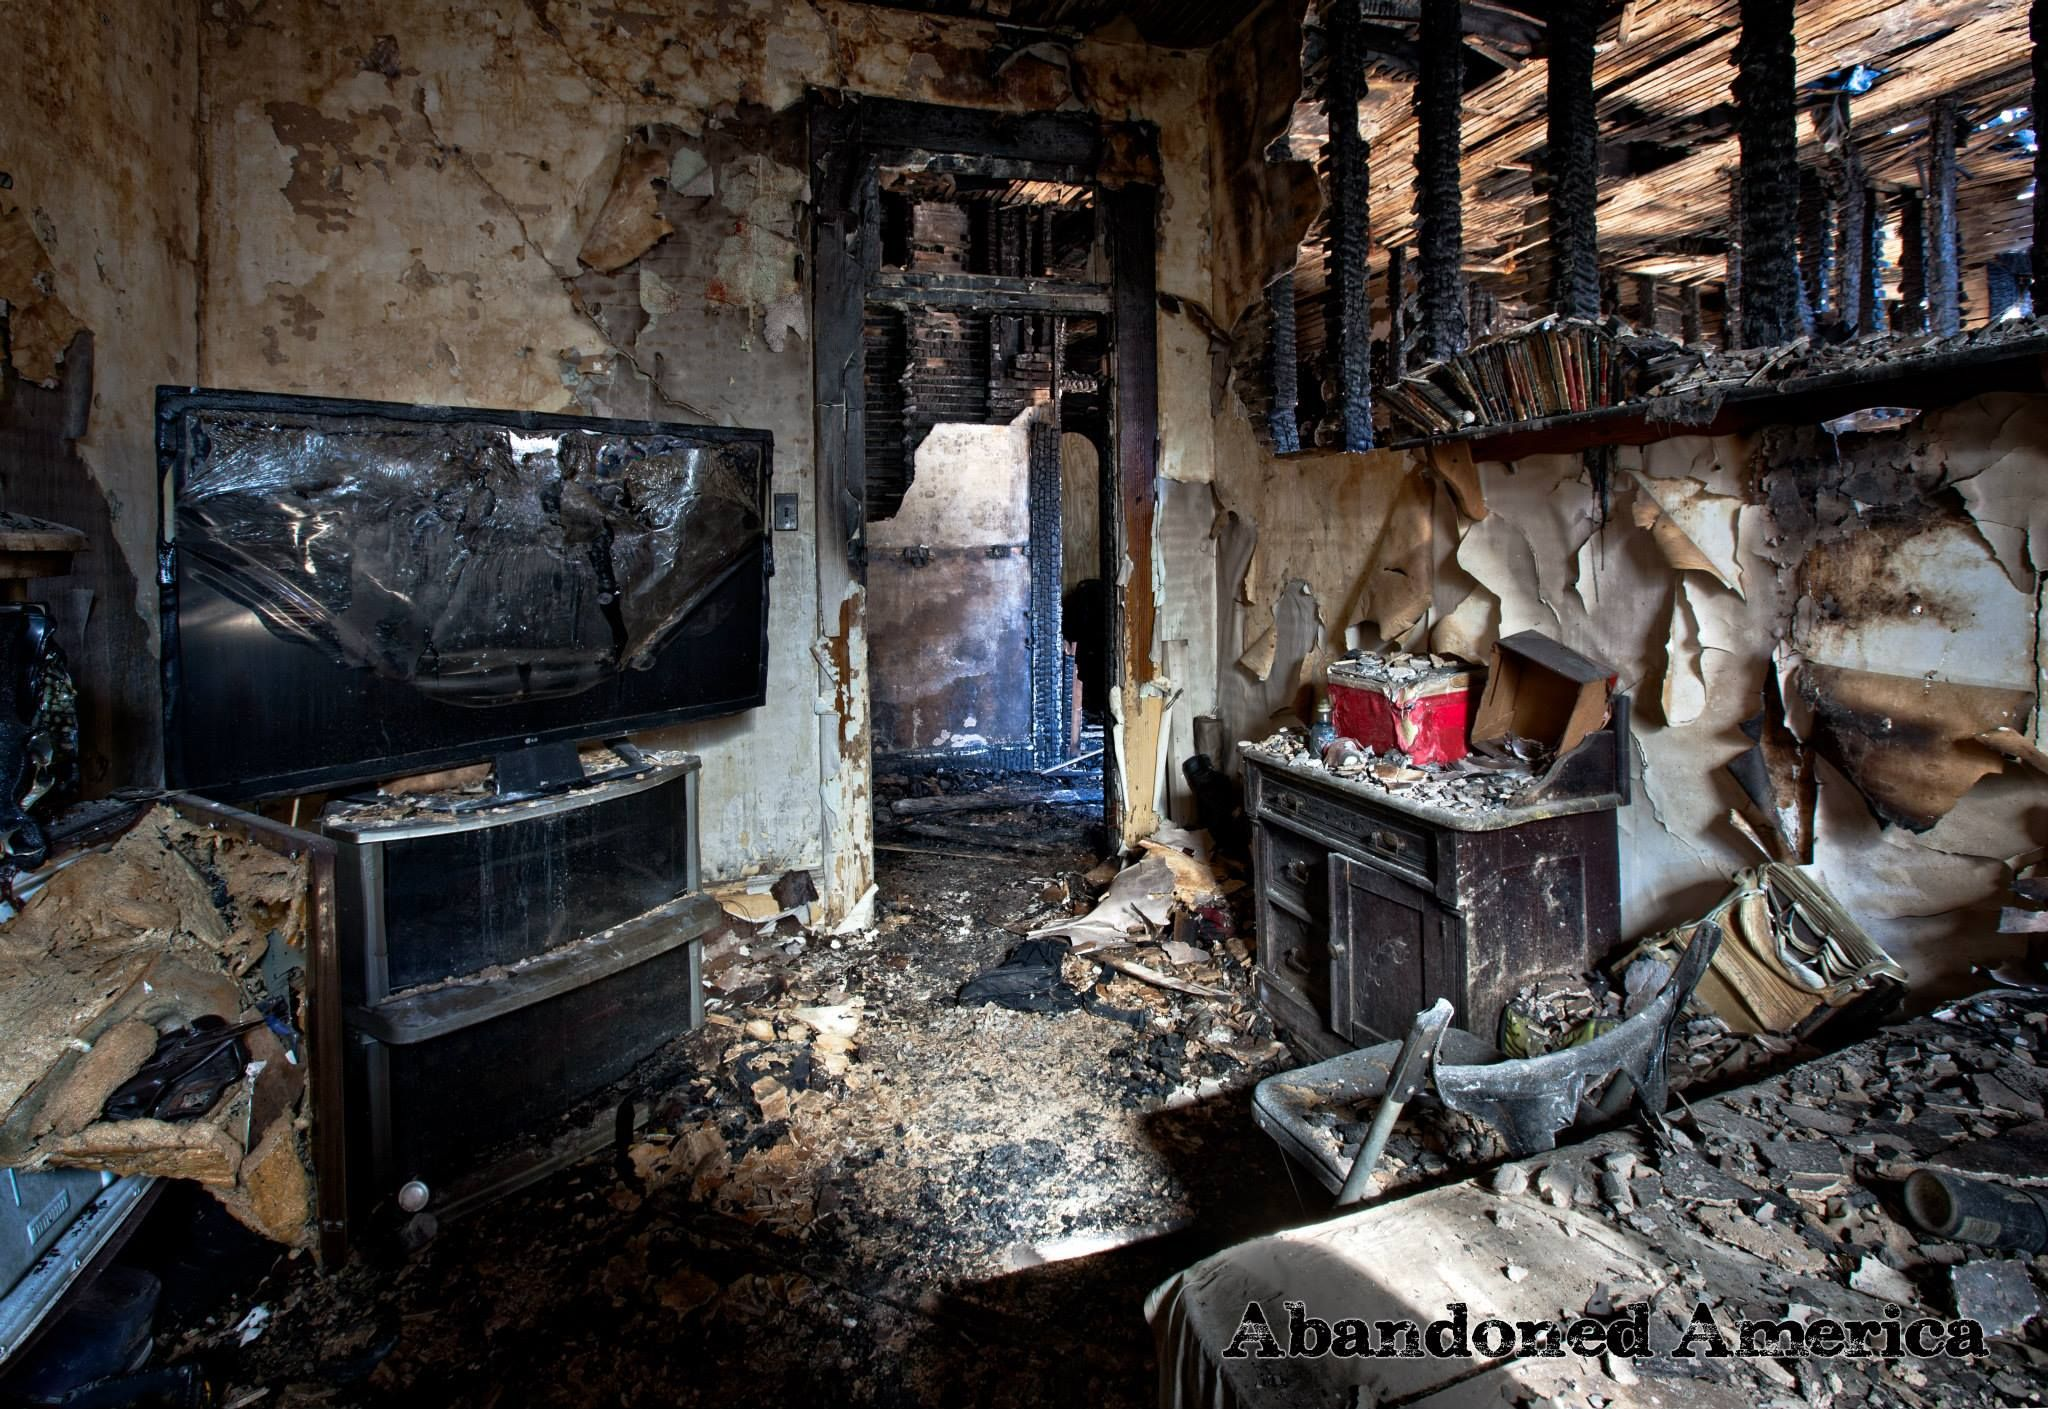 Residential Hotel Destroyed By Arson The Dode In Bellefonte Pa People Who Lived Rooms Were Not Able To Return Them